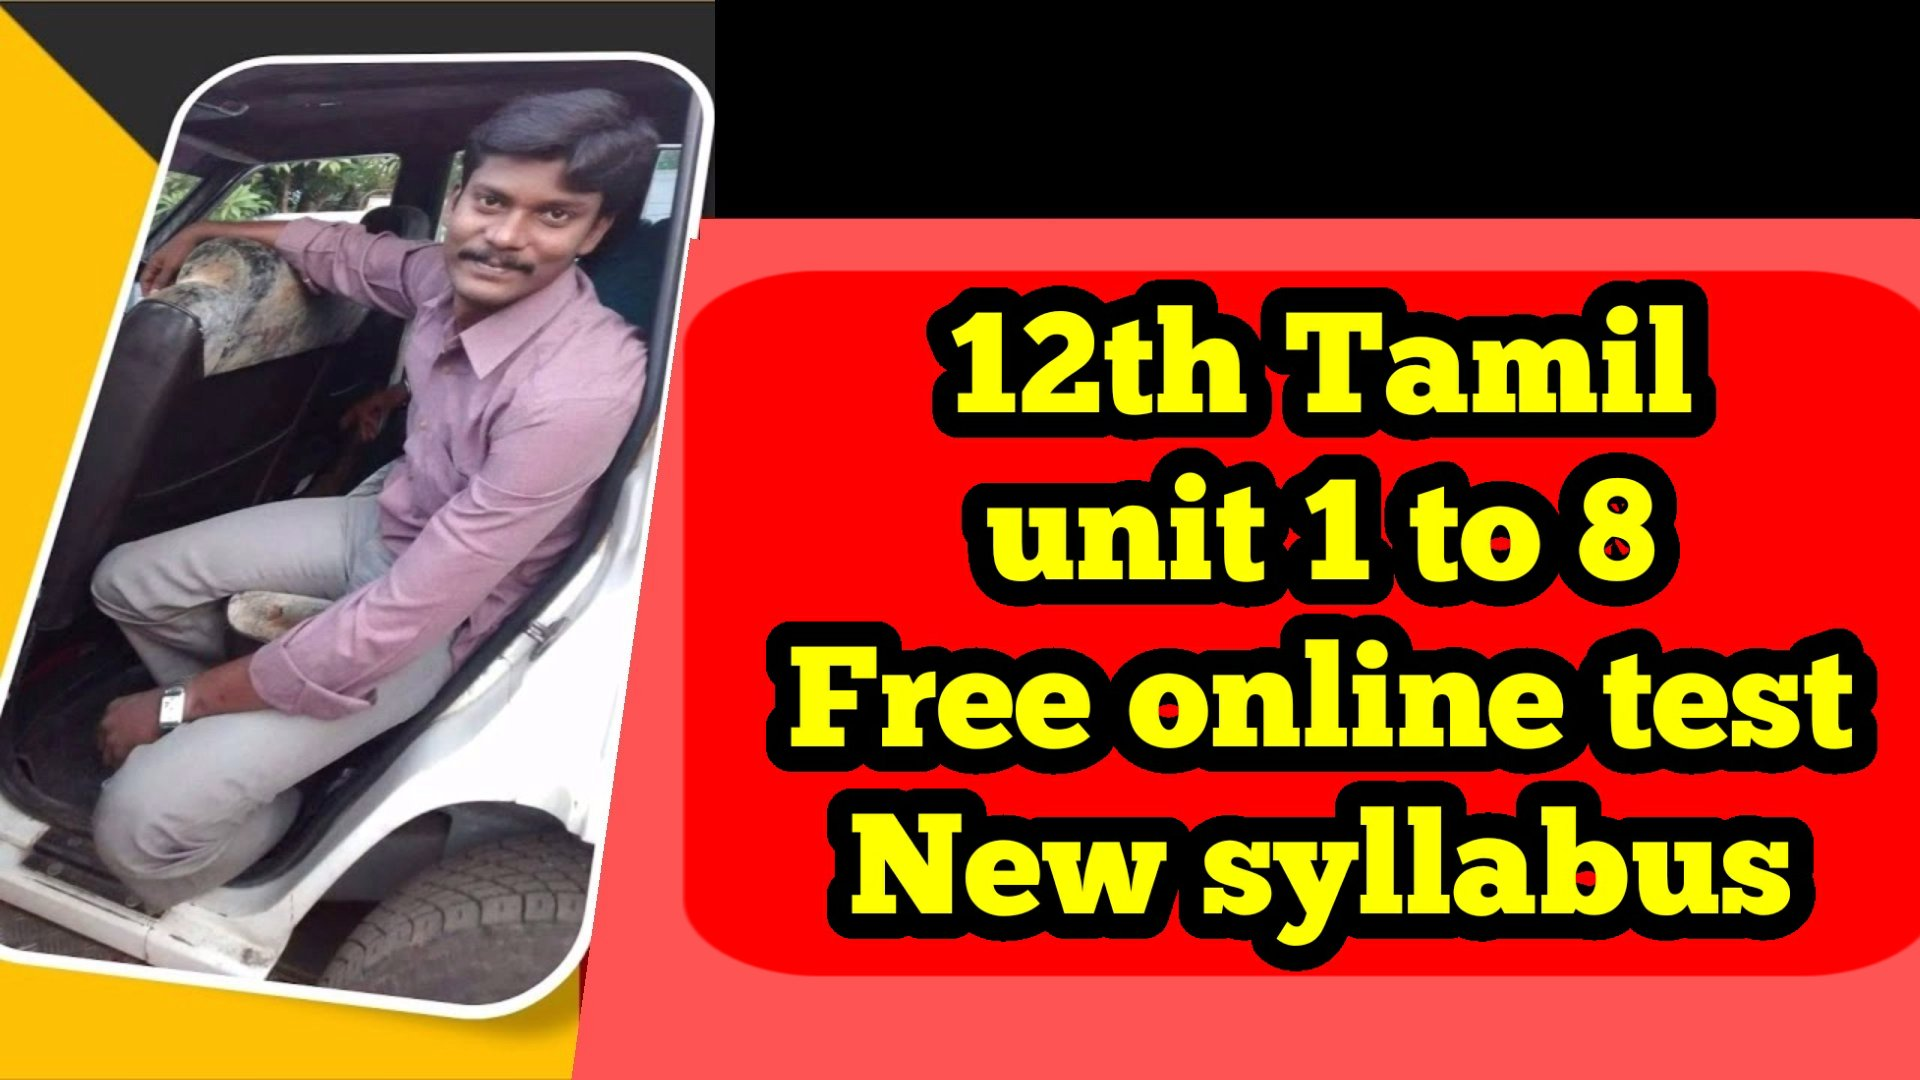 12th Tamil - One mark Questions - Free online test - New syllabus based